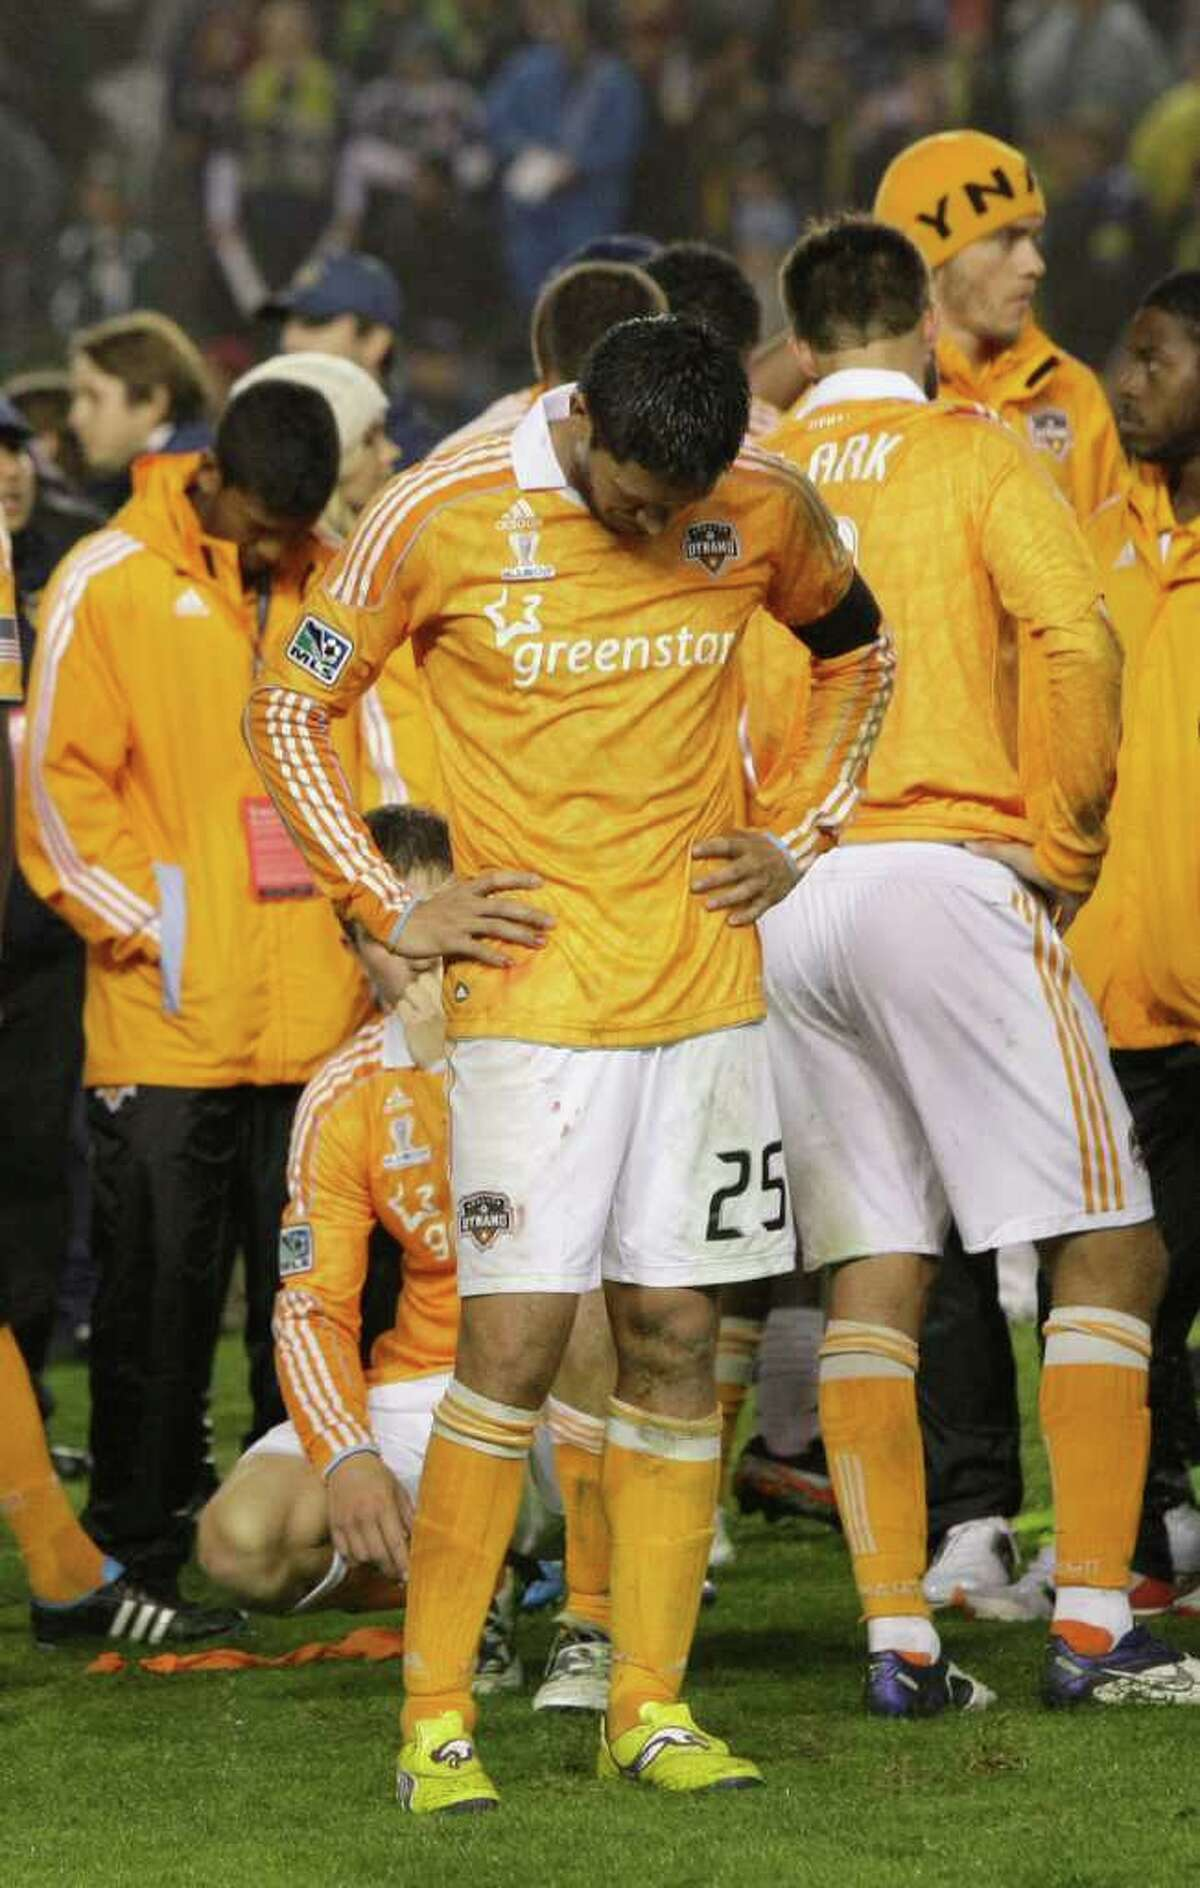 Houston Dynamo forward Brian Ching (25) hangs his head after the MLS Cup soccer match at the Home Depot Center Sunday, Nov. 20, 2011, in Carson, Calif. The Los Angeles Galaxy beat the Dyanamo 1-0 for the title.